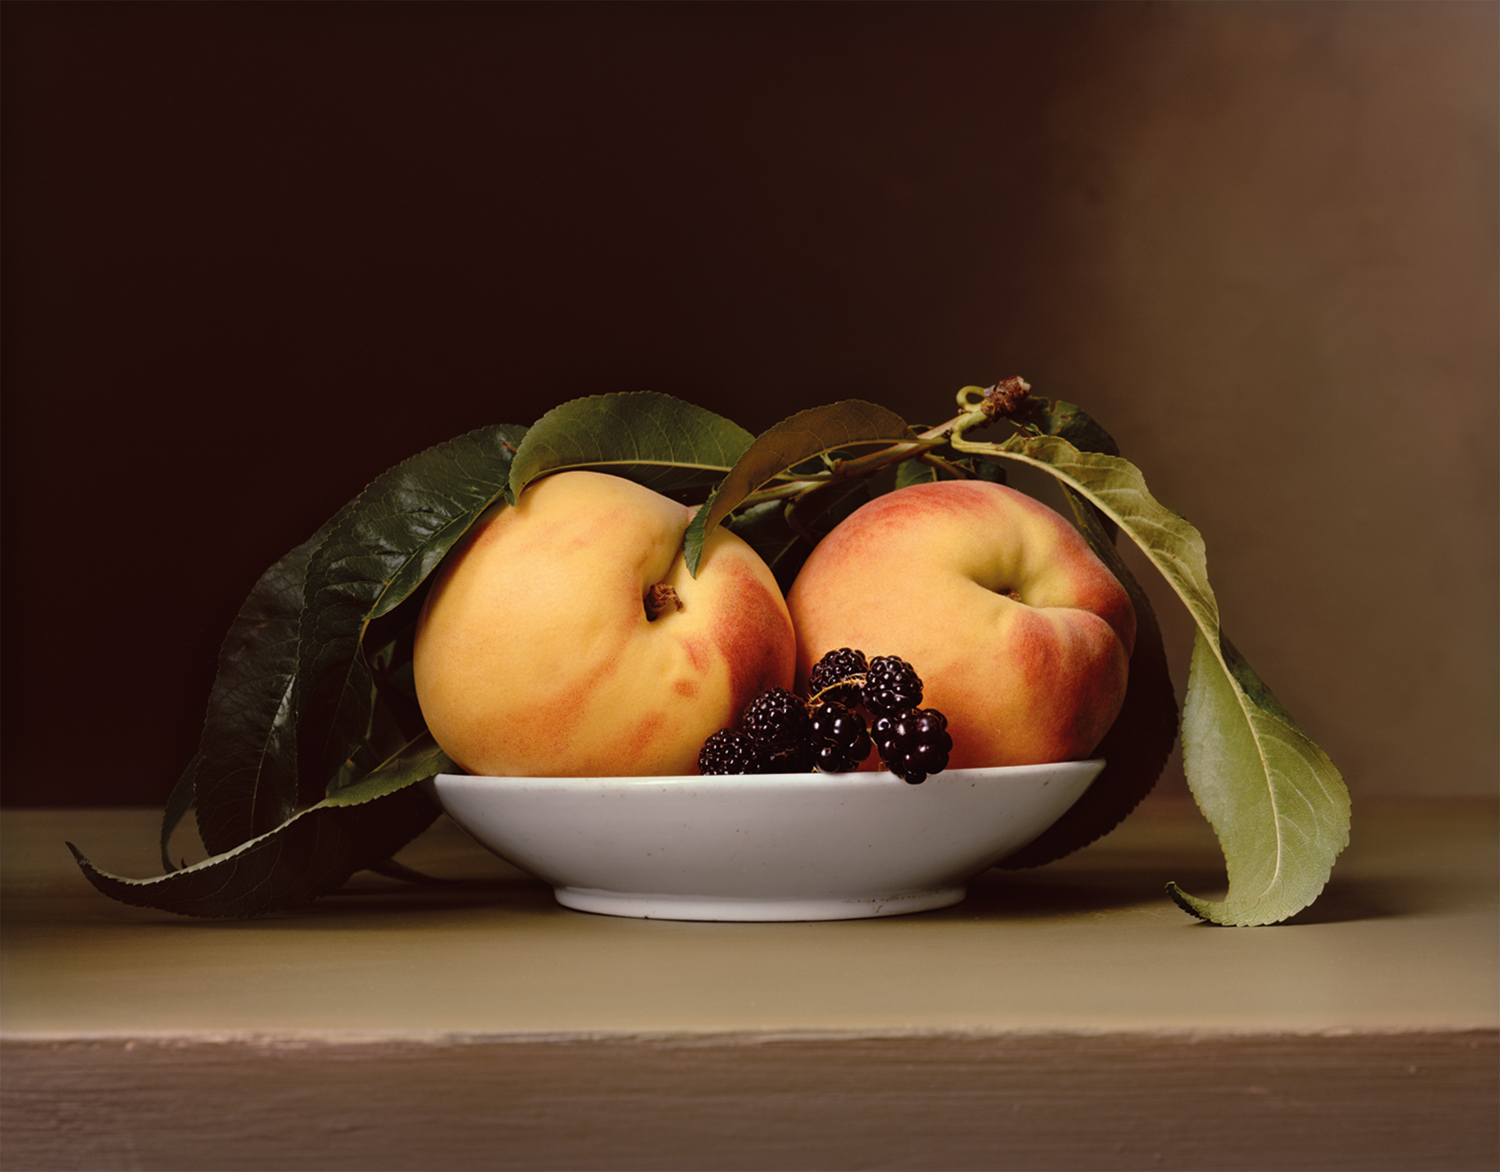 Plate 14 - Peaches and Blackberries